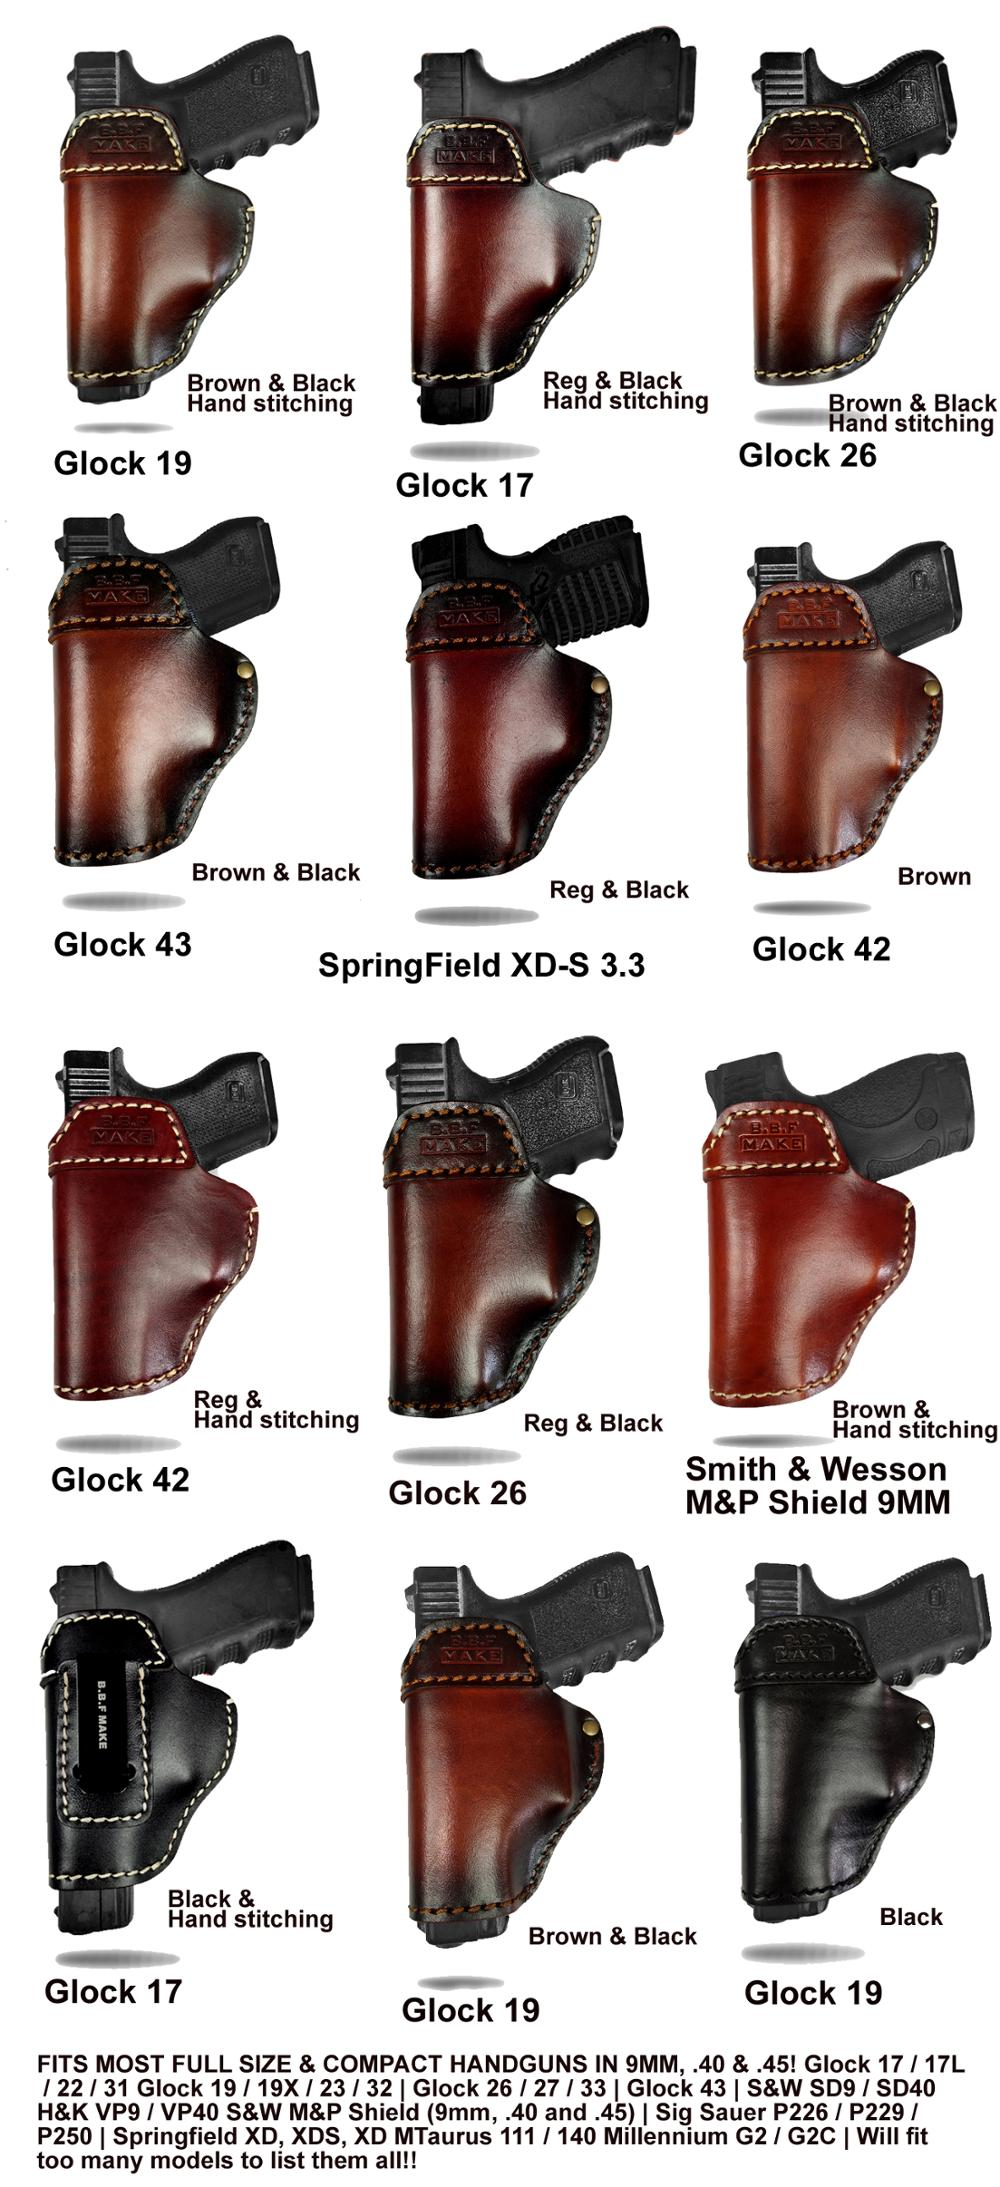 US $39 99 |B B F Make Gun Holster Leather Handmade Pistol case for M&P  Shield Glock 17 19 22 23 25 26 27 32 33 42 43 / Springfield XD S IWB-in